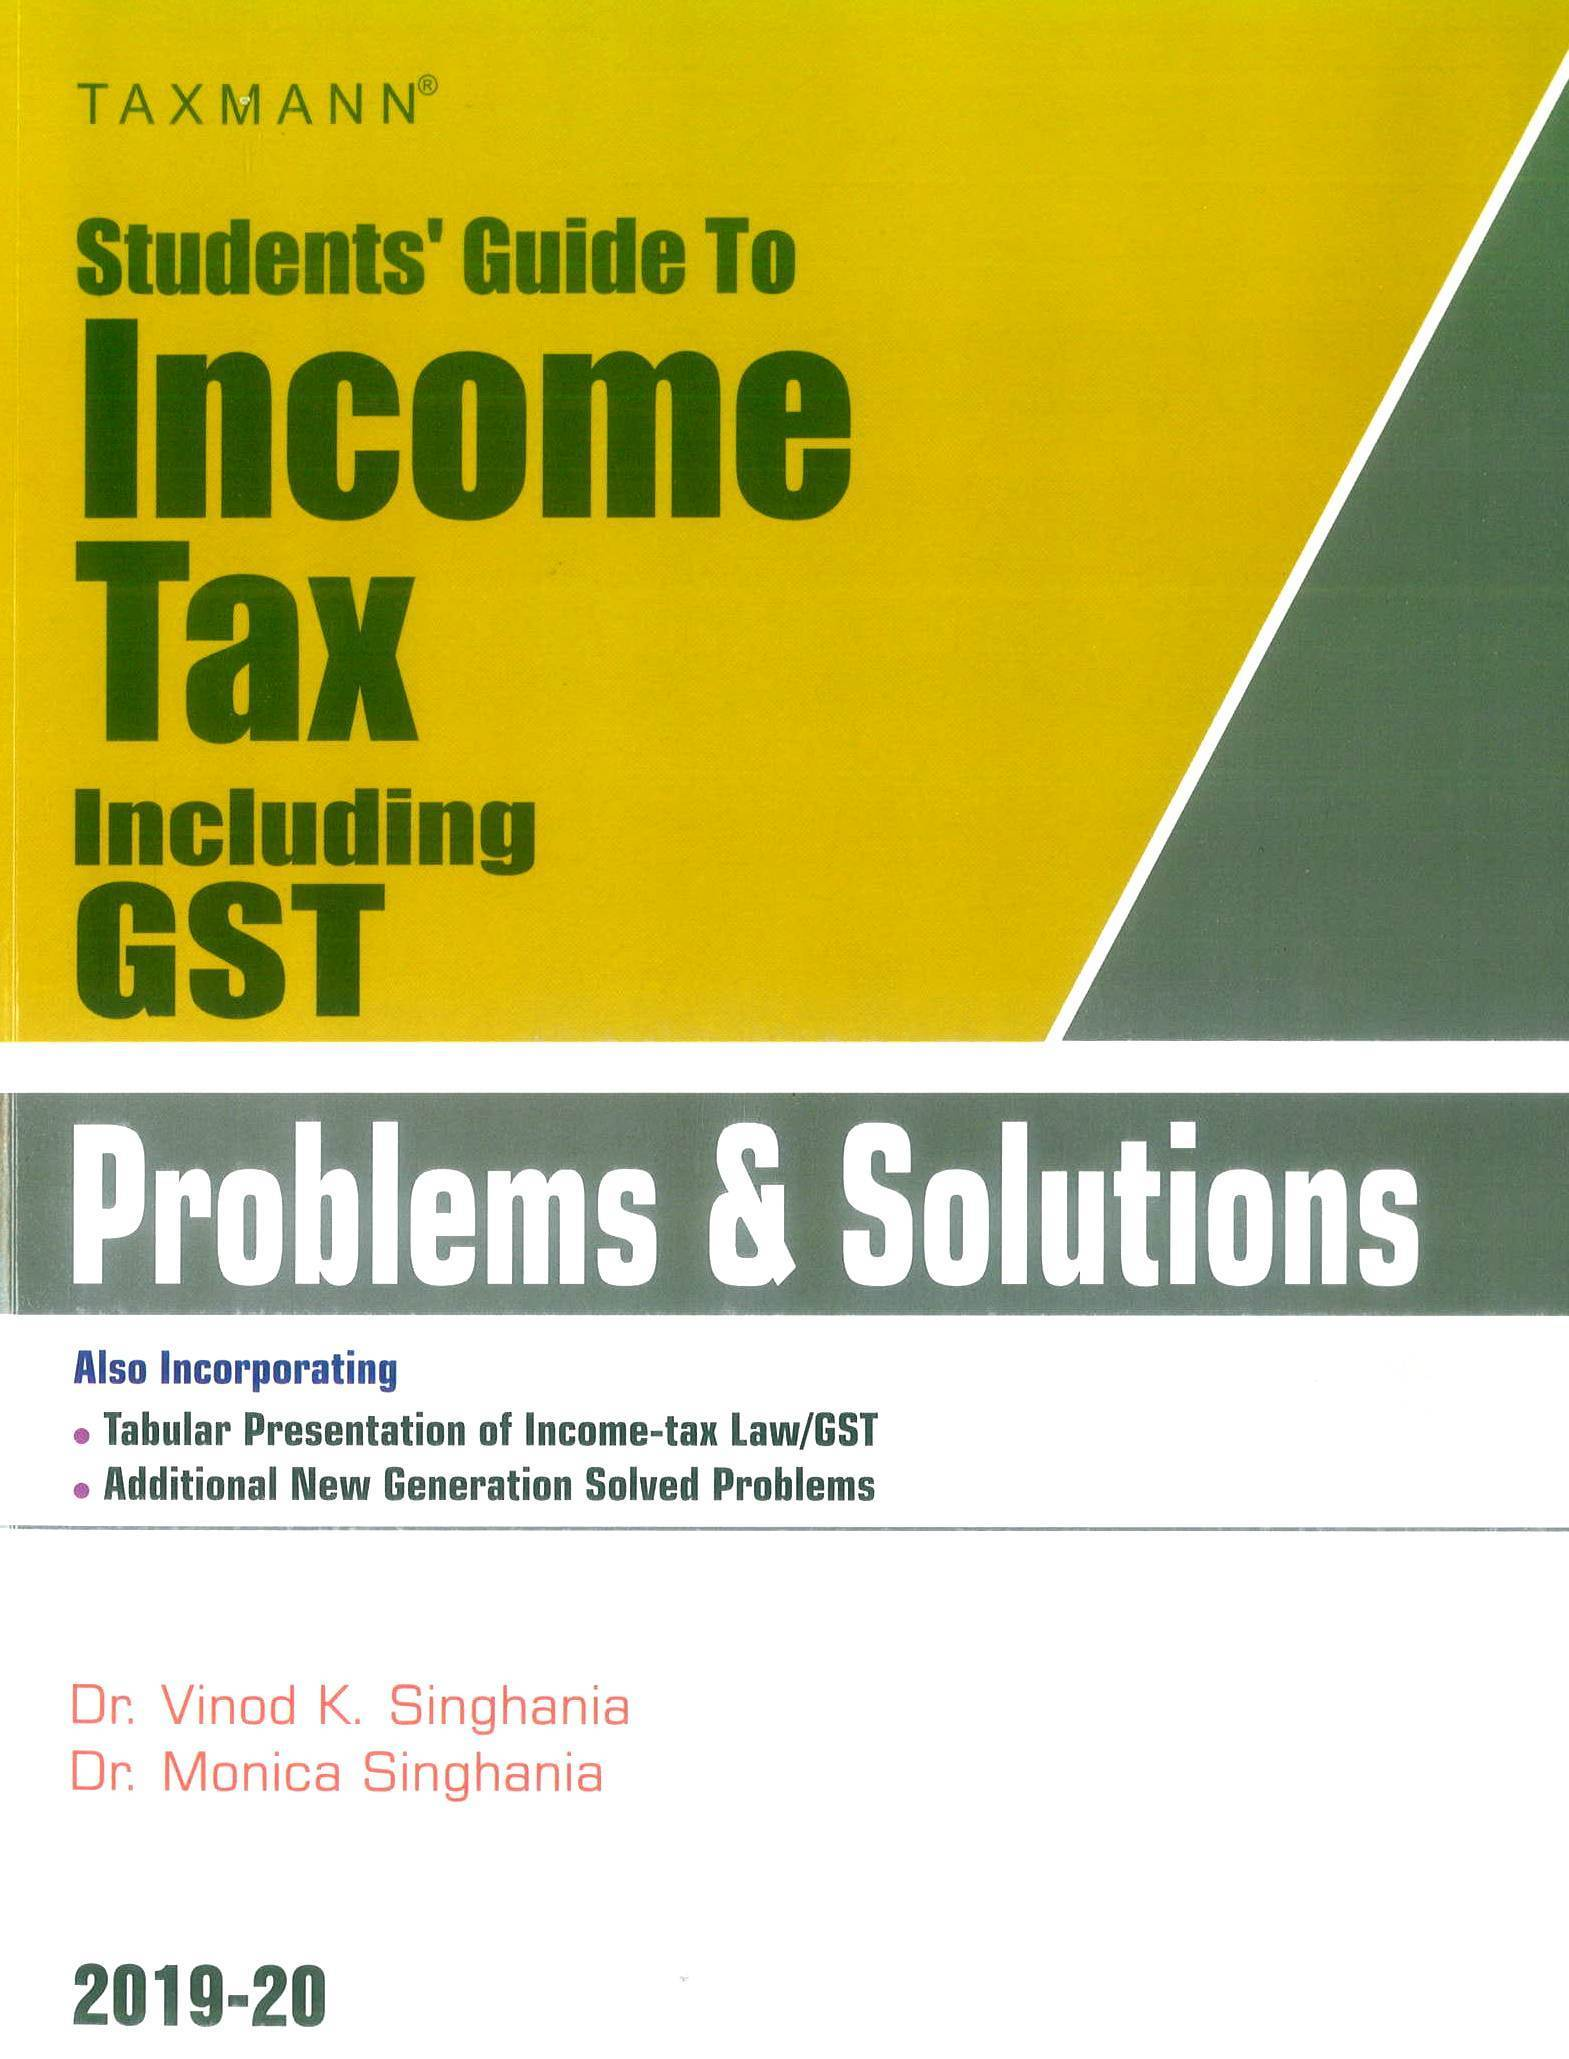 Taxmann Students Guide To Income Tax Including GST – Problems & Solution for Old and New Syllabus both By Monica Singhania Vinod K Singhania Applicable for November 2019 Exam